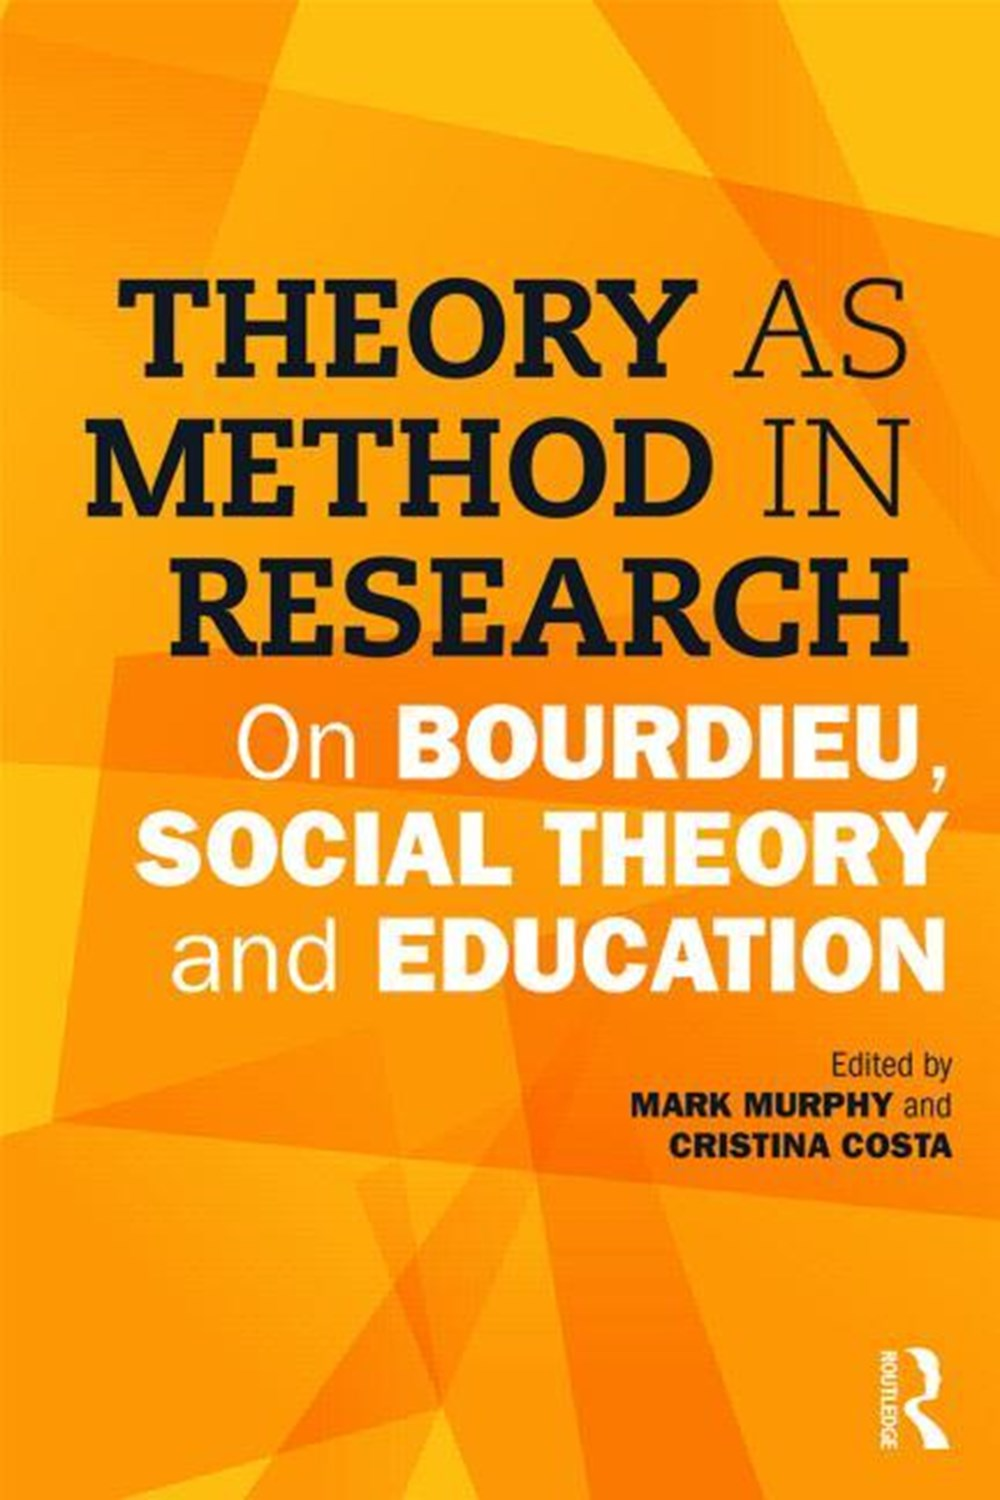 Theory as Method in Research On Bourdieu, Social Theory and Education